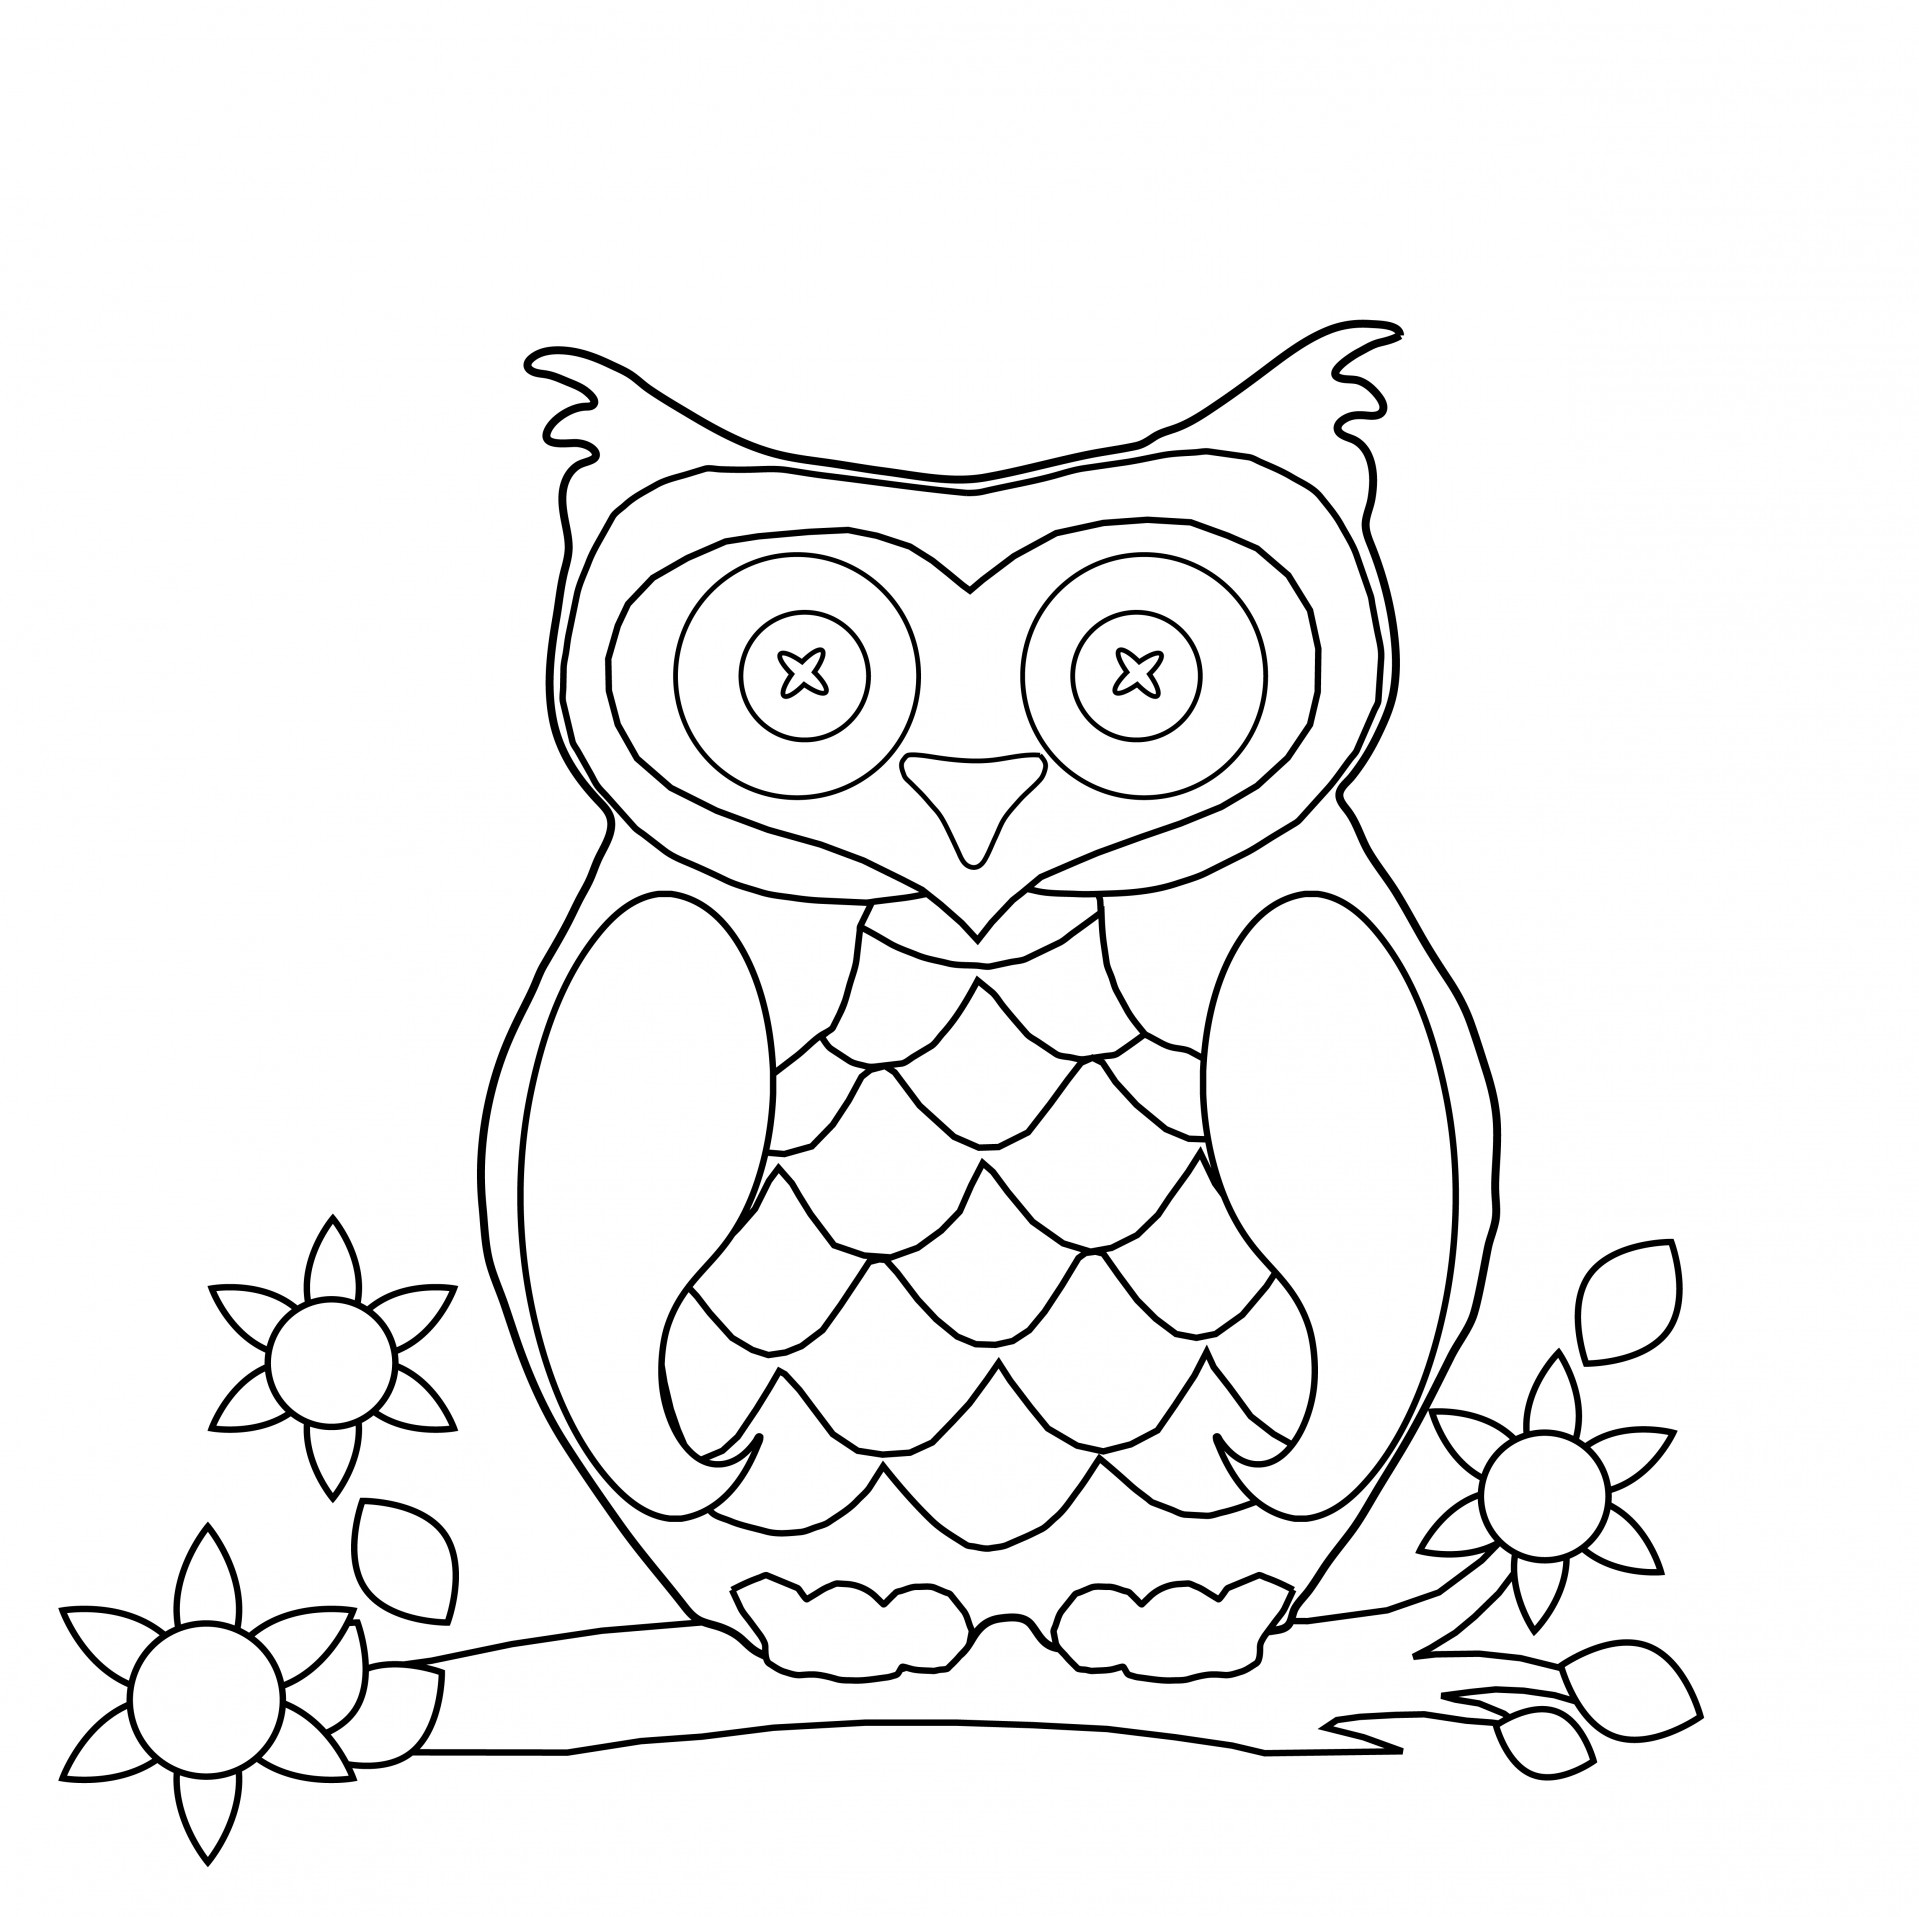 adults coloring pages free printable abstract coloring pages for adults pages adults coloring